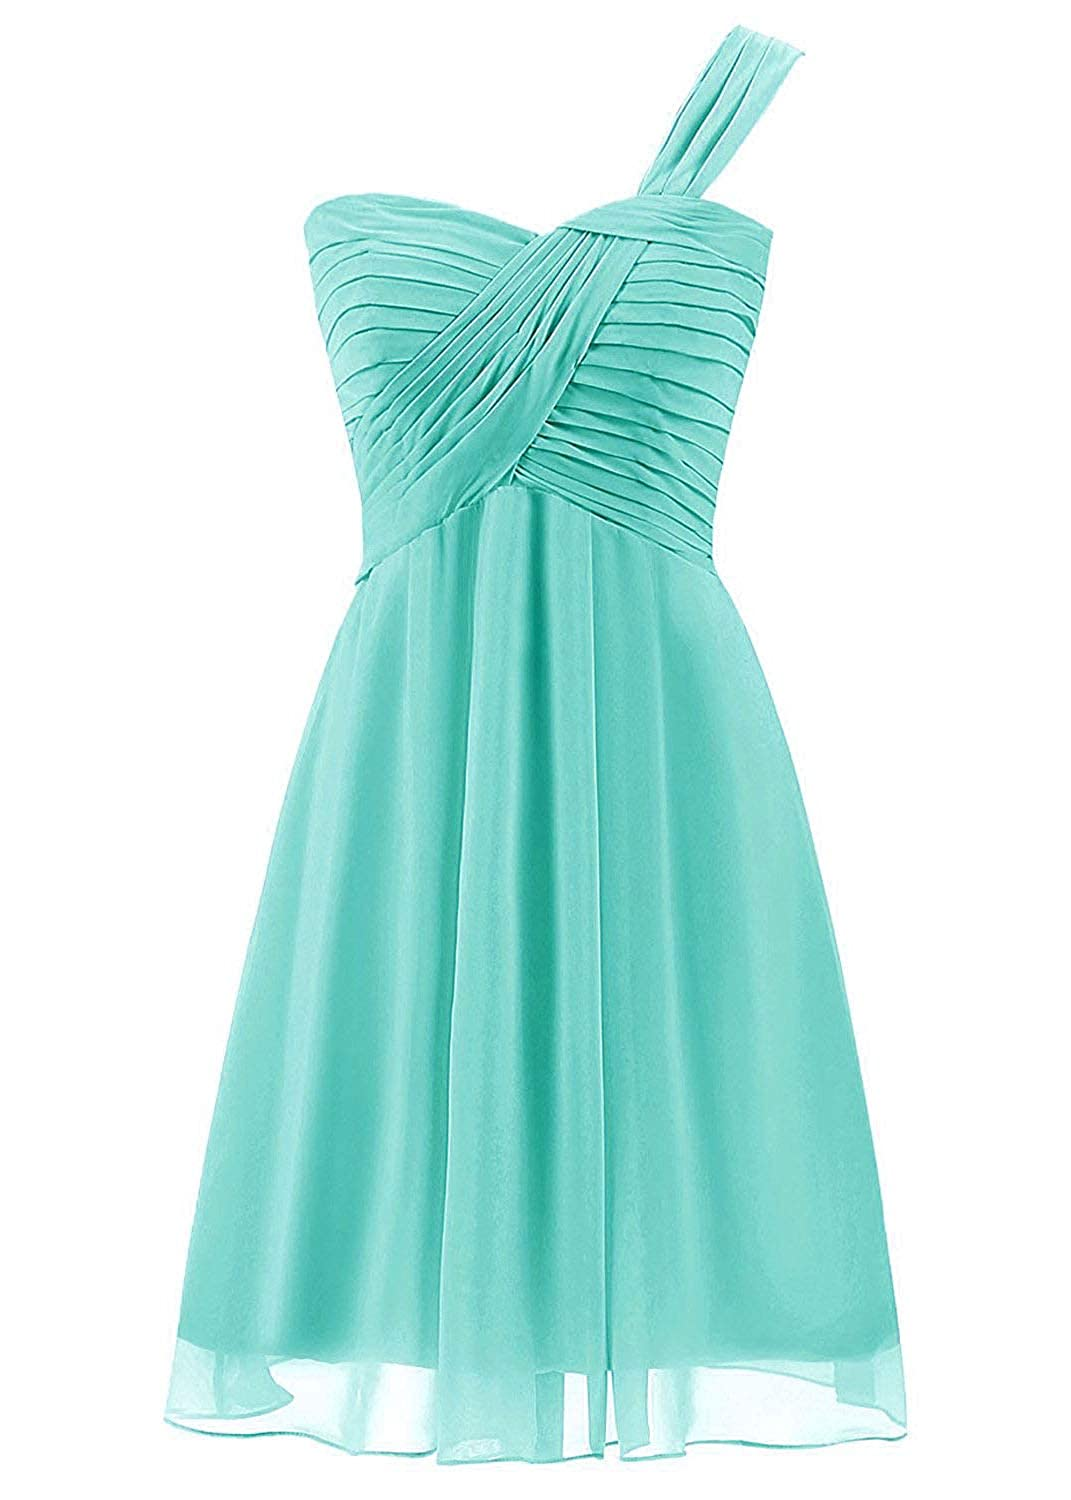 Uther Short Bridesmaid Dresses Chiffon Pleated One Shoulder Prom Homecoming Gowns CL000293